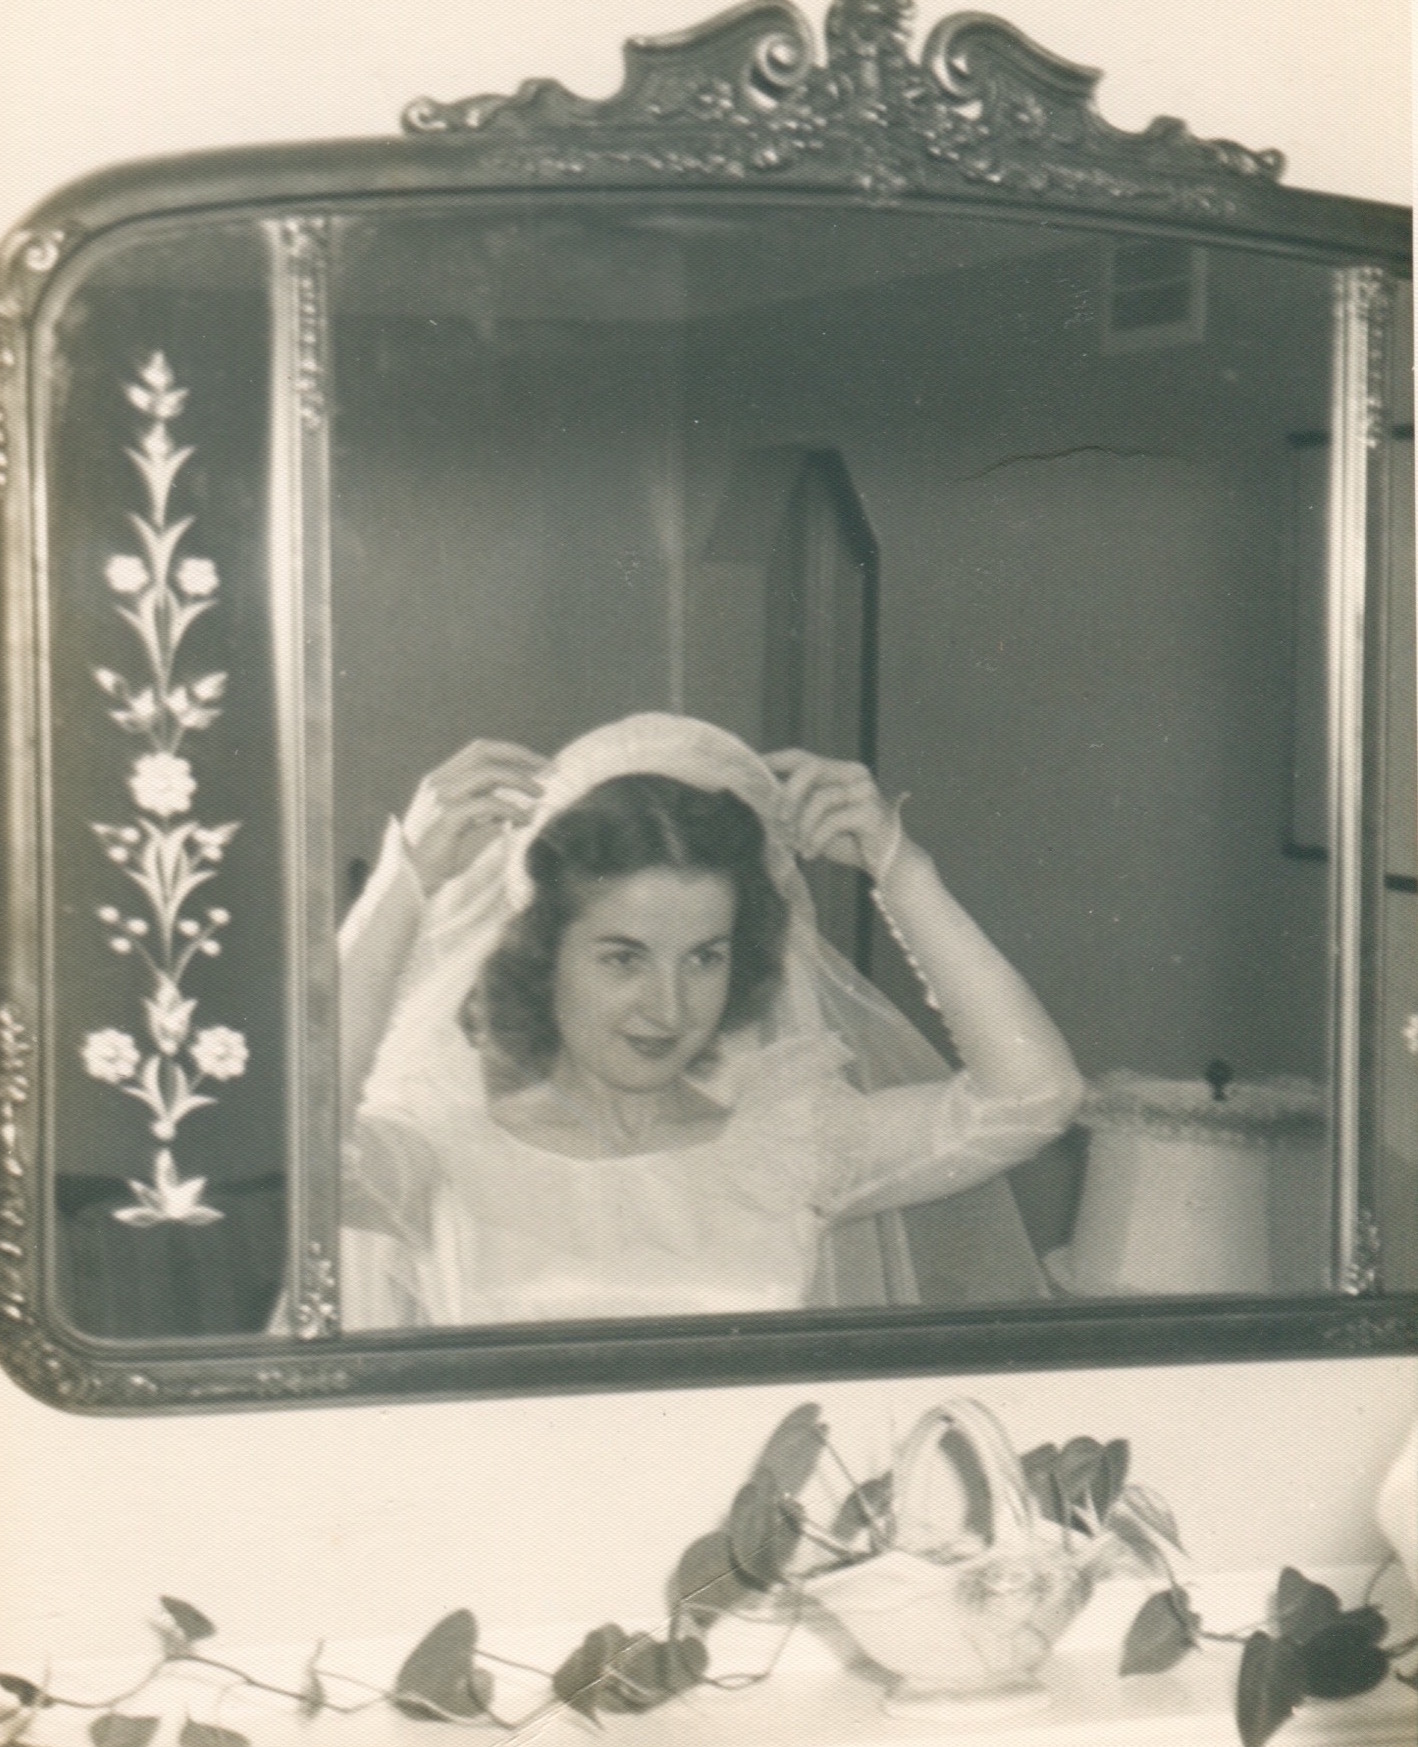 My grandmother Evelyn on her wedding day.